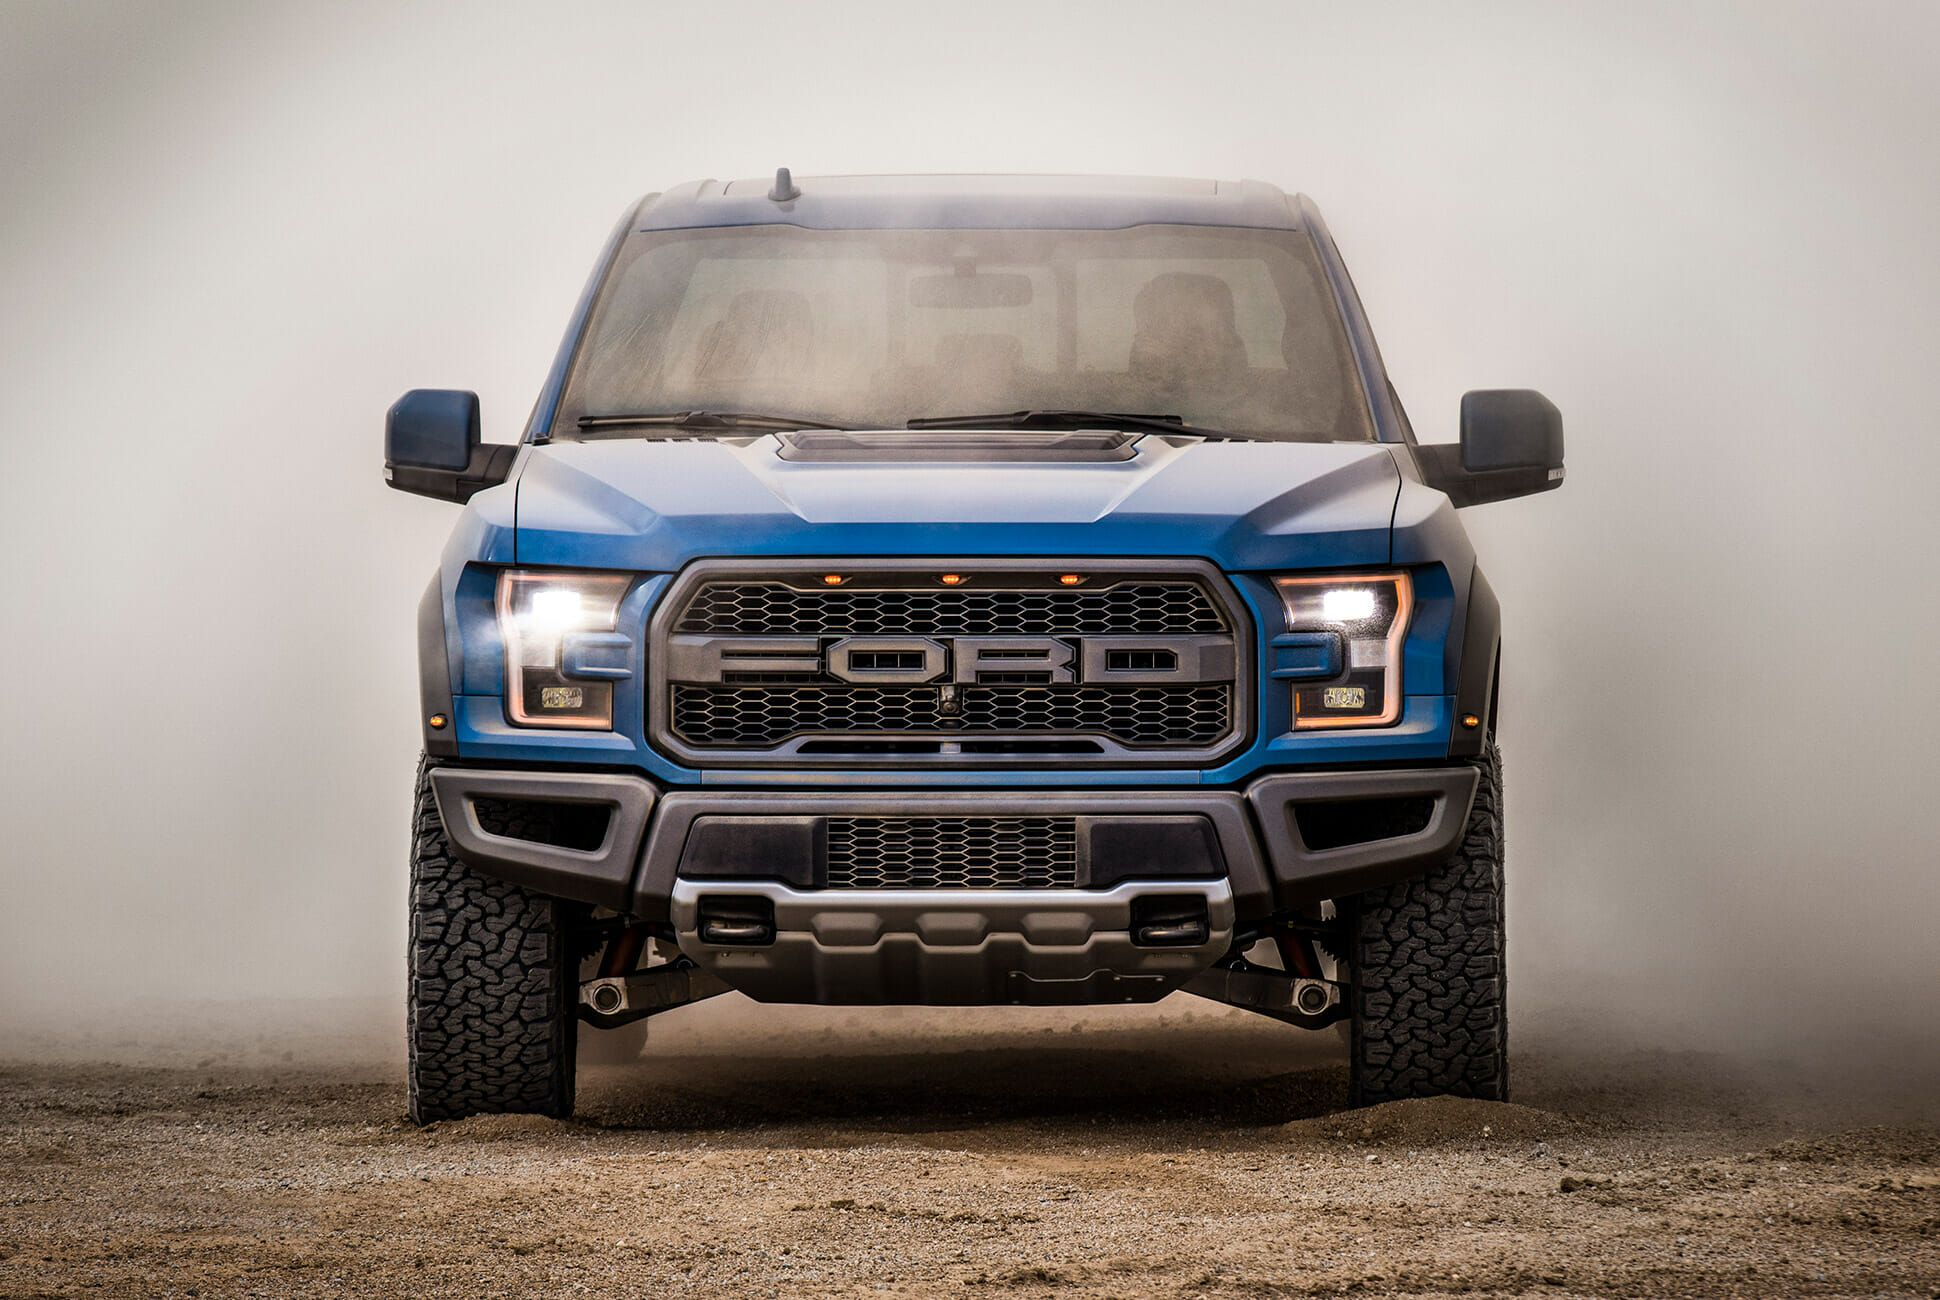 Rumor Has It The Ford Raptor Is About To Get Even More Awesome